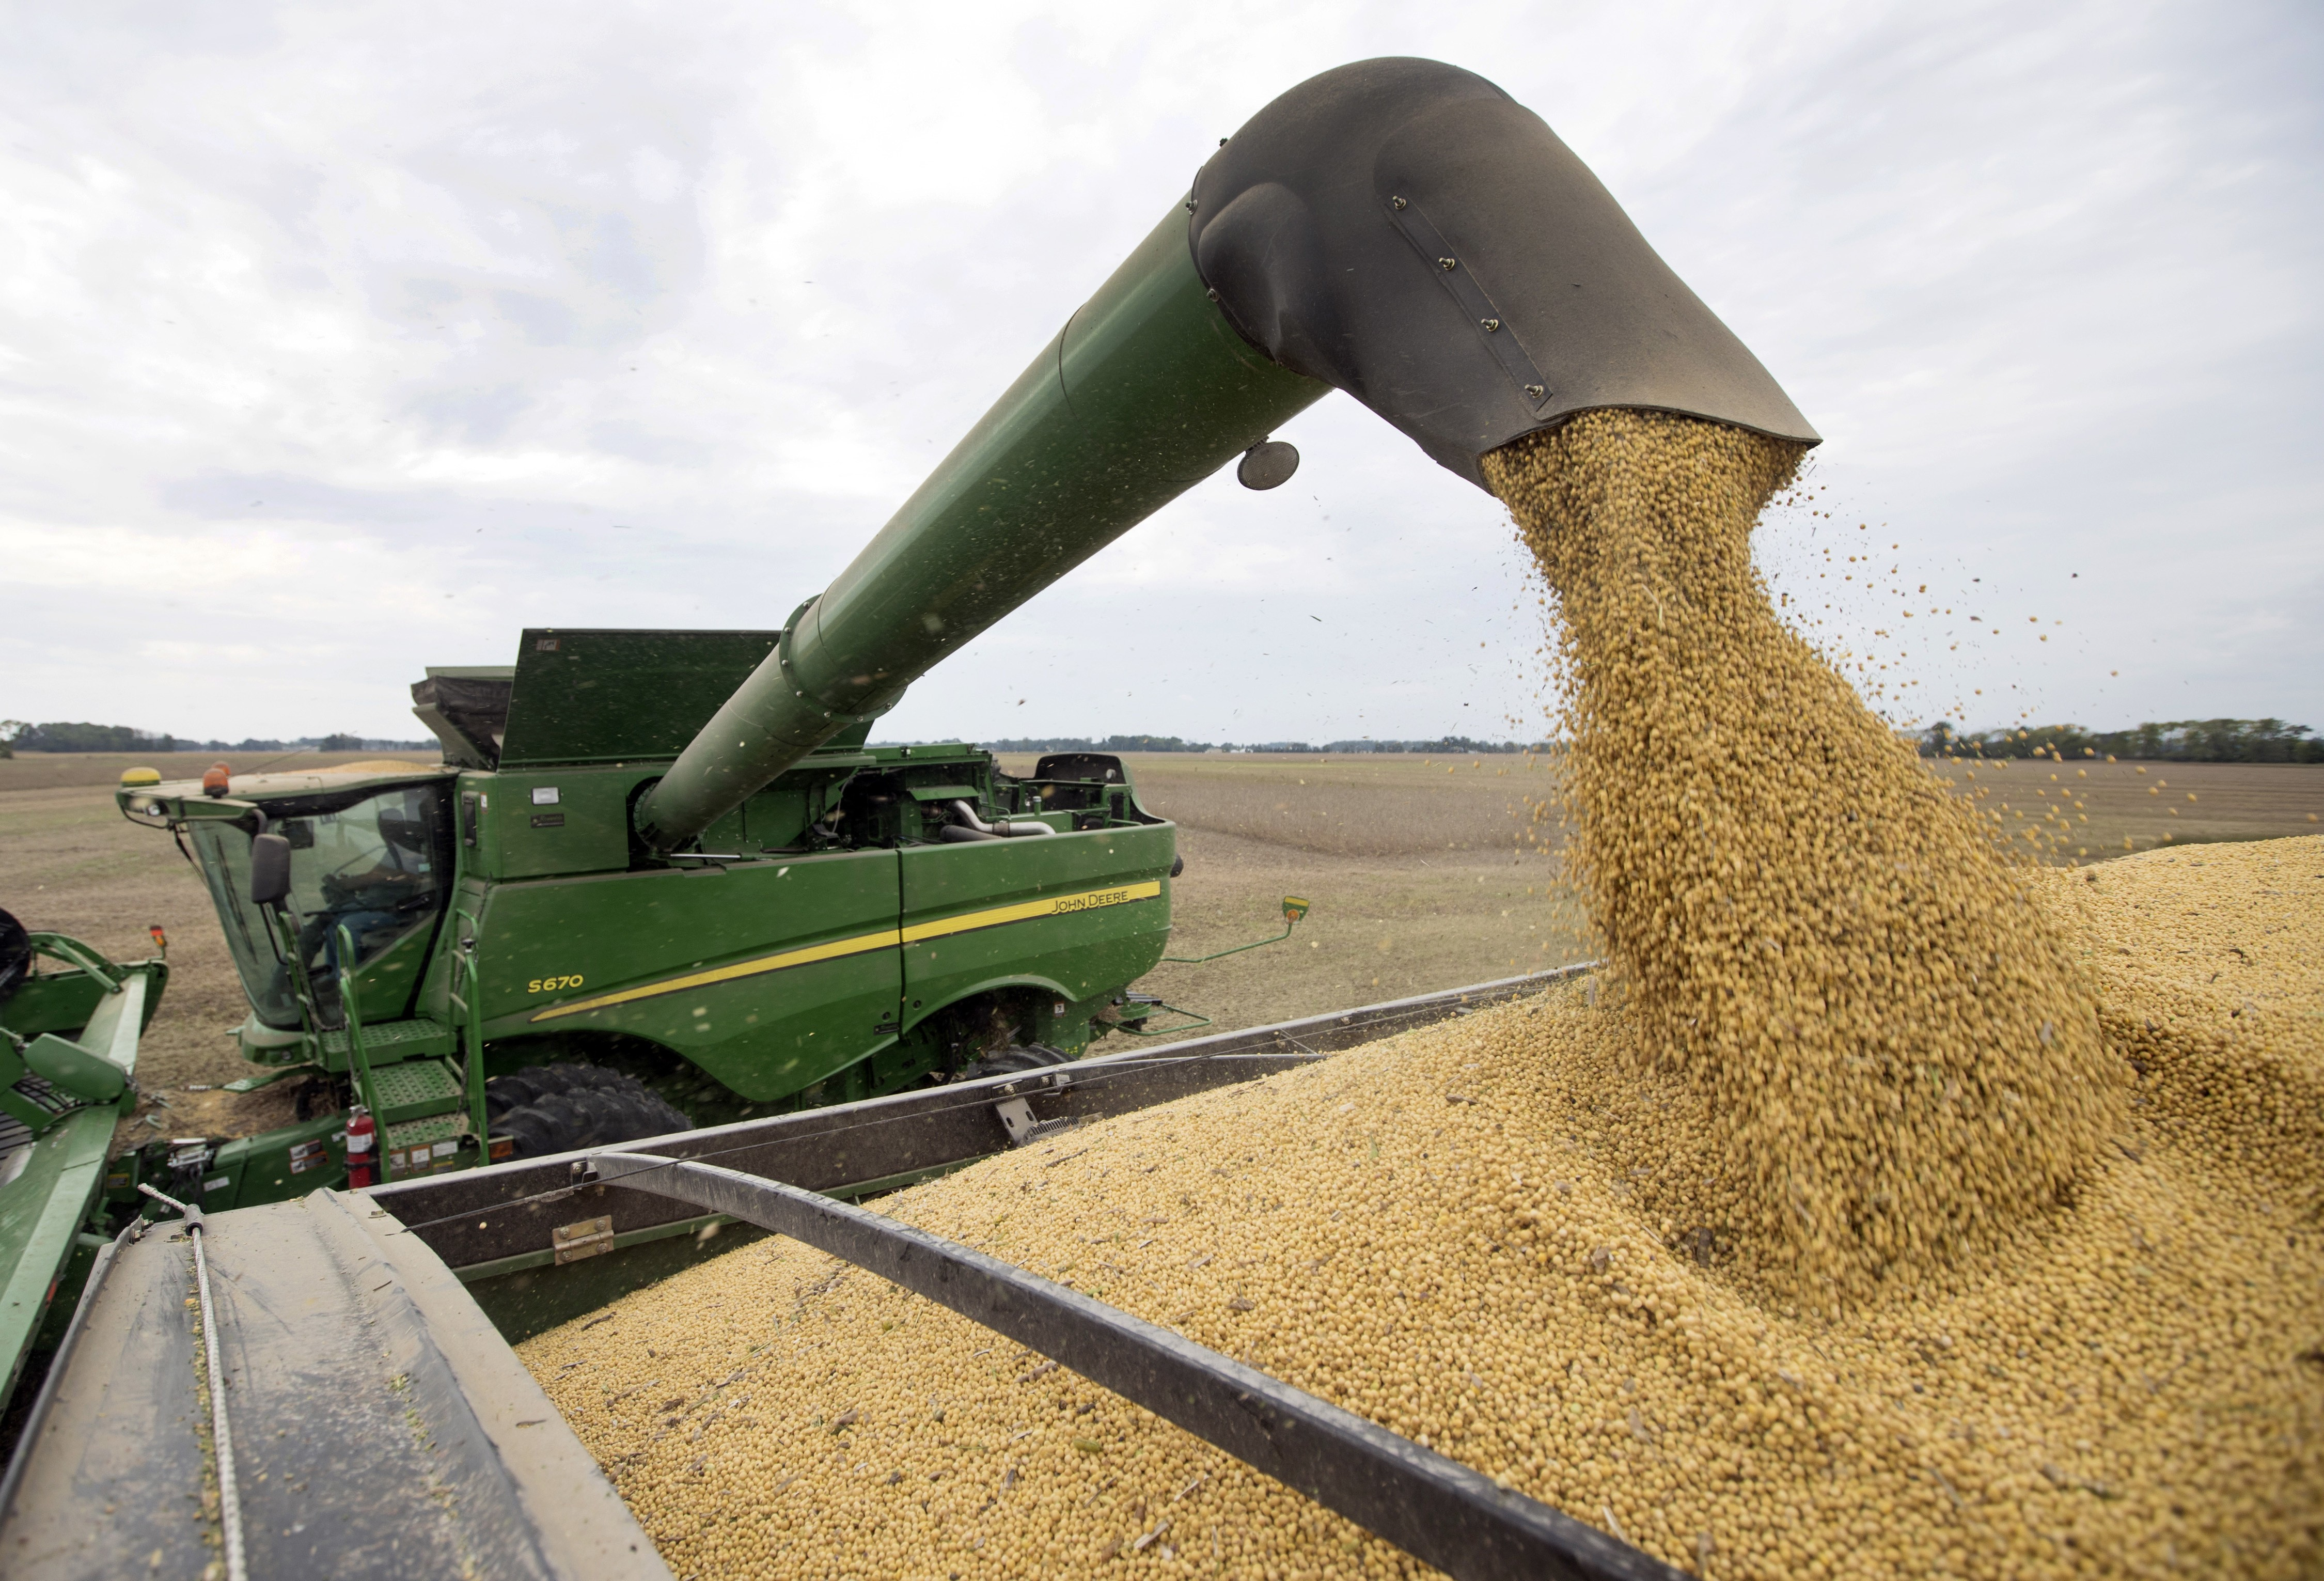 China won't buy US agricultural products if Americans 'flip